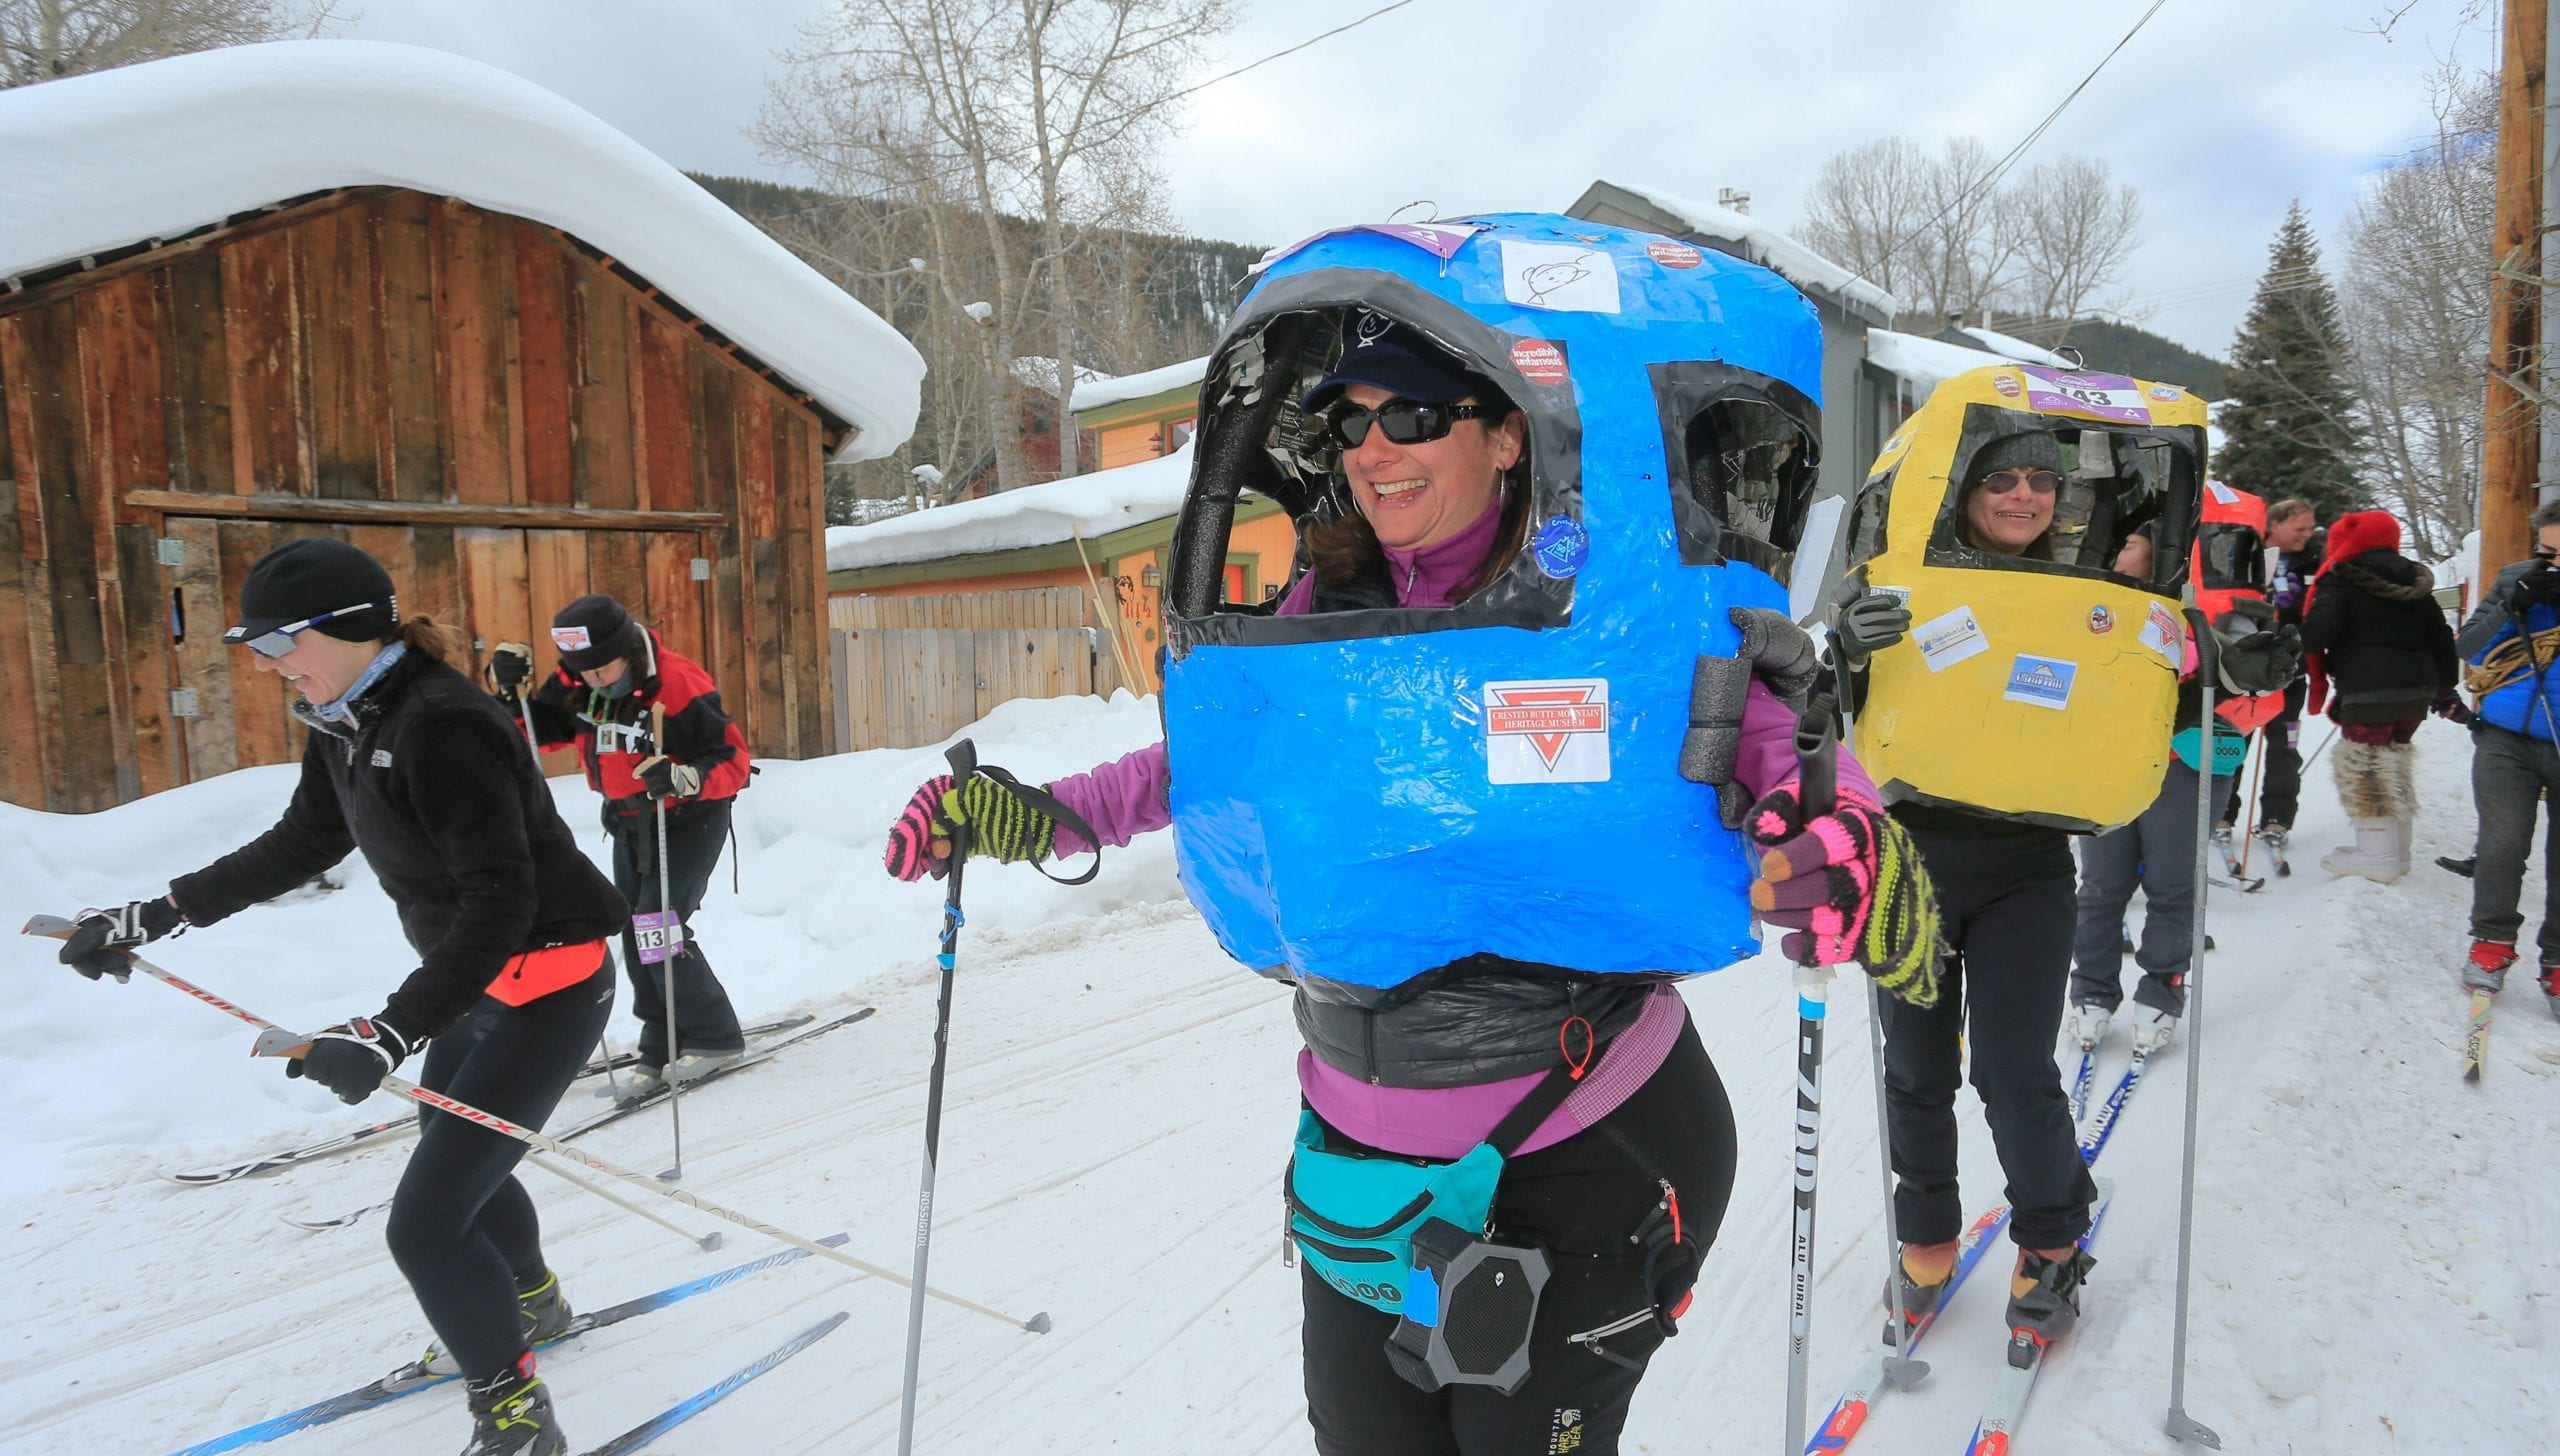 Alley Loop racers dressed up in a ski gondola costume.